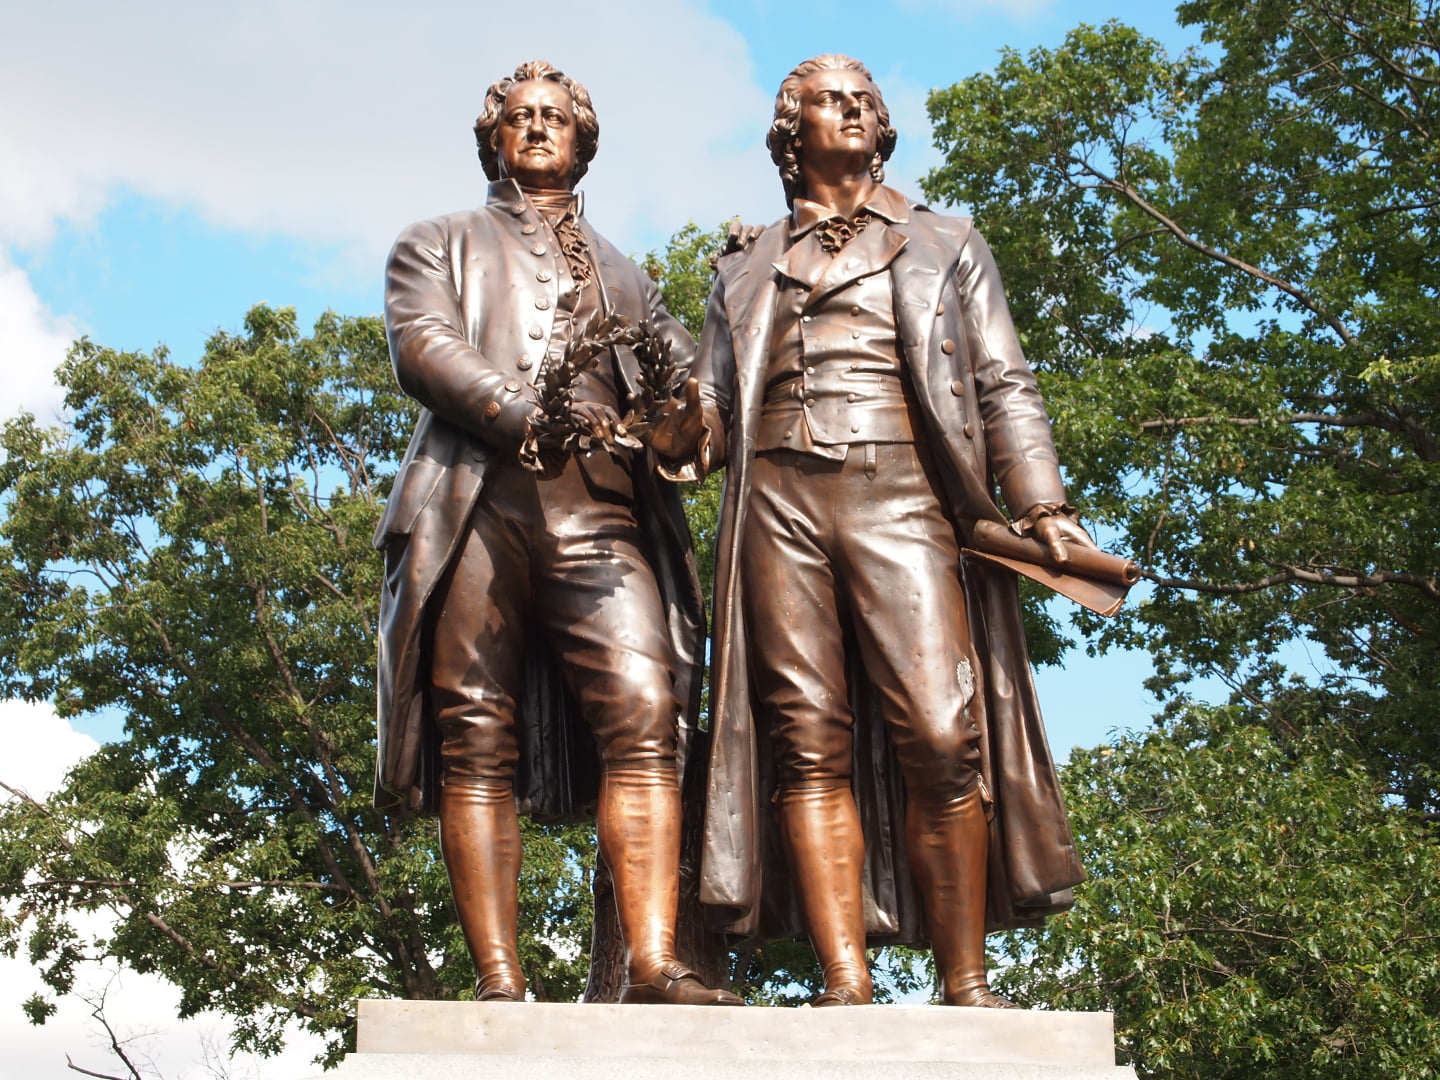 Goethe–Schiller Monument, Syracuse, New York State